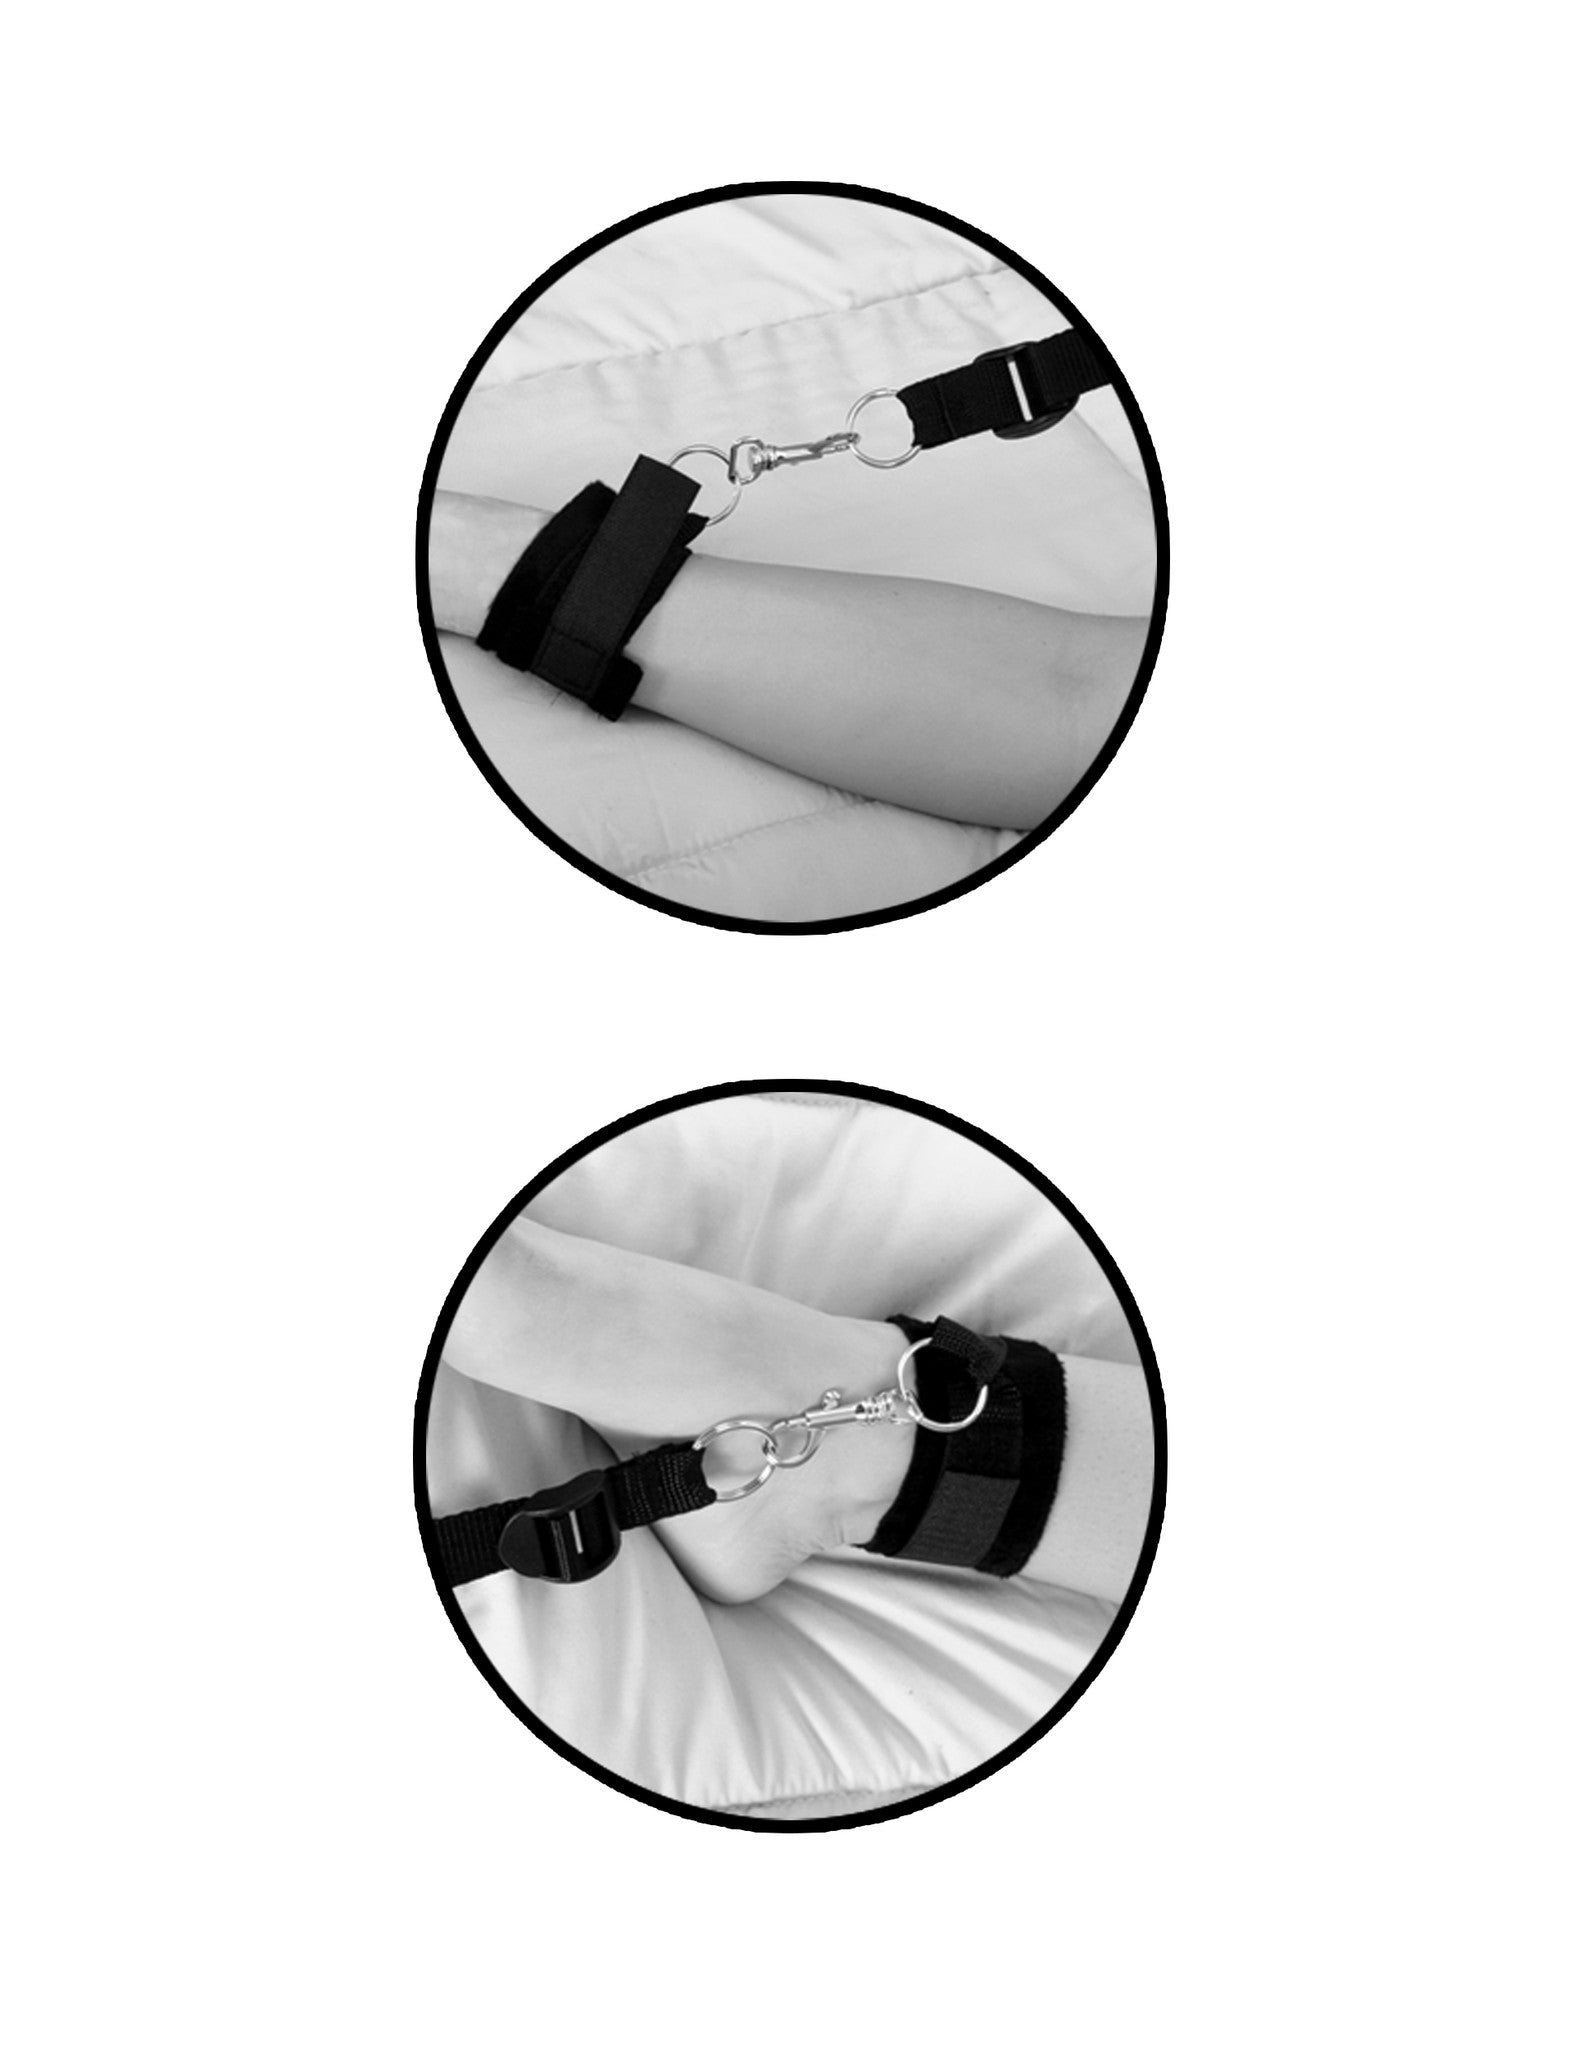 Wrap-o-Around Mattress Restraints Kit